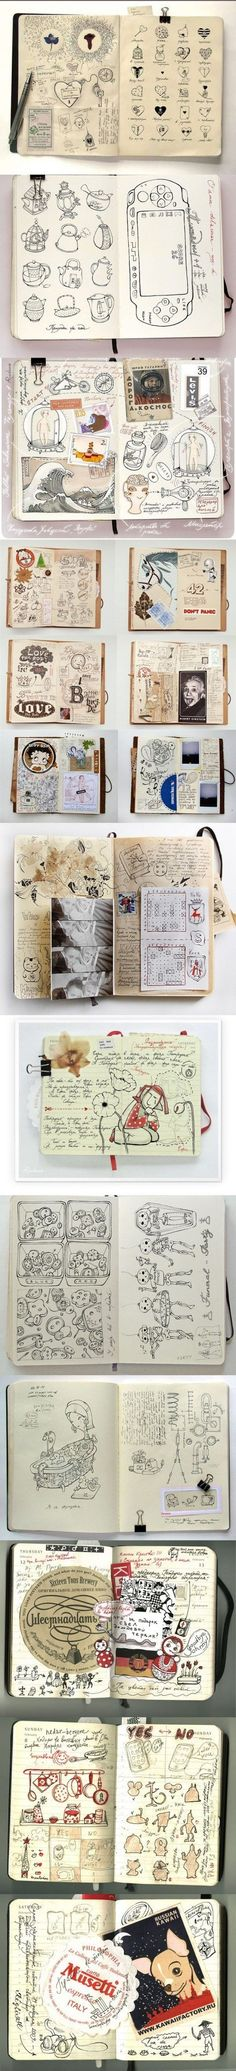 Absolutely Fantastic style in this sketchbook. Not sure who the artist is. There's a link below...however it's a Chinese site, so I'm confused about whether or not this is an artist showcasing their work, or if this is a Chinese Pinterest style board/blog.